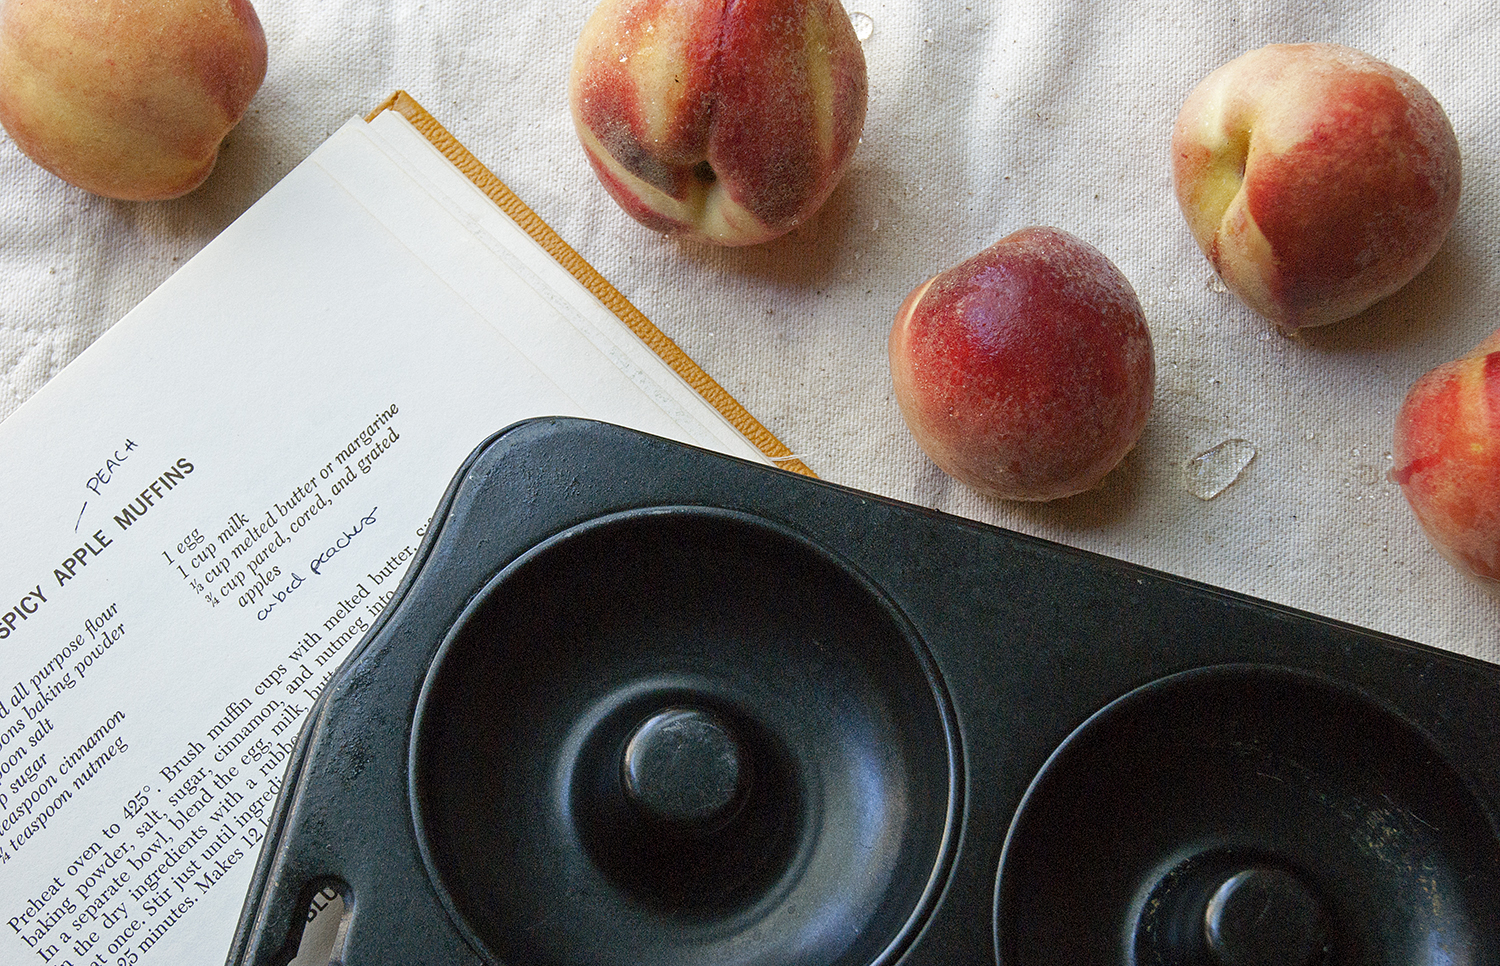 peaches + cookbook + pan.jpg